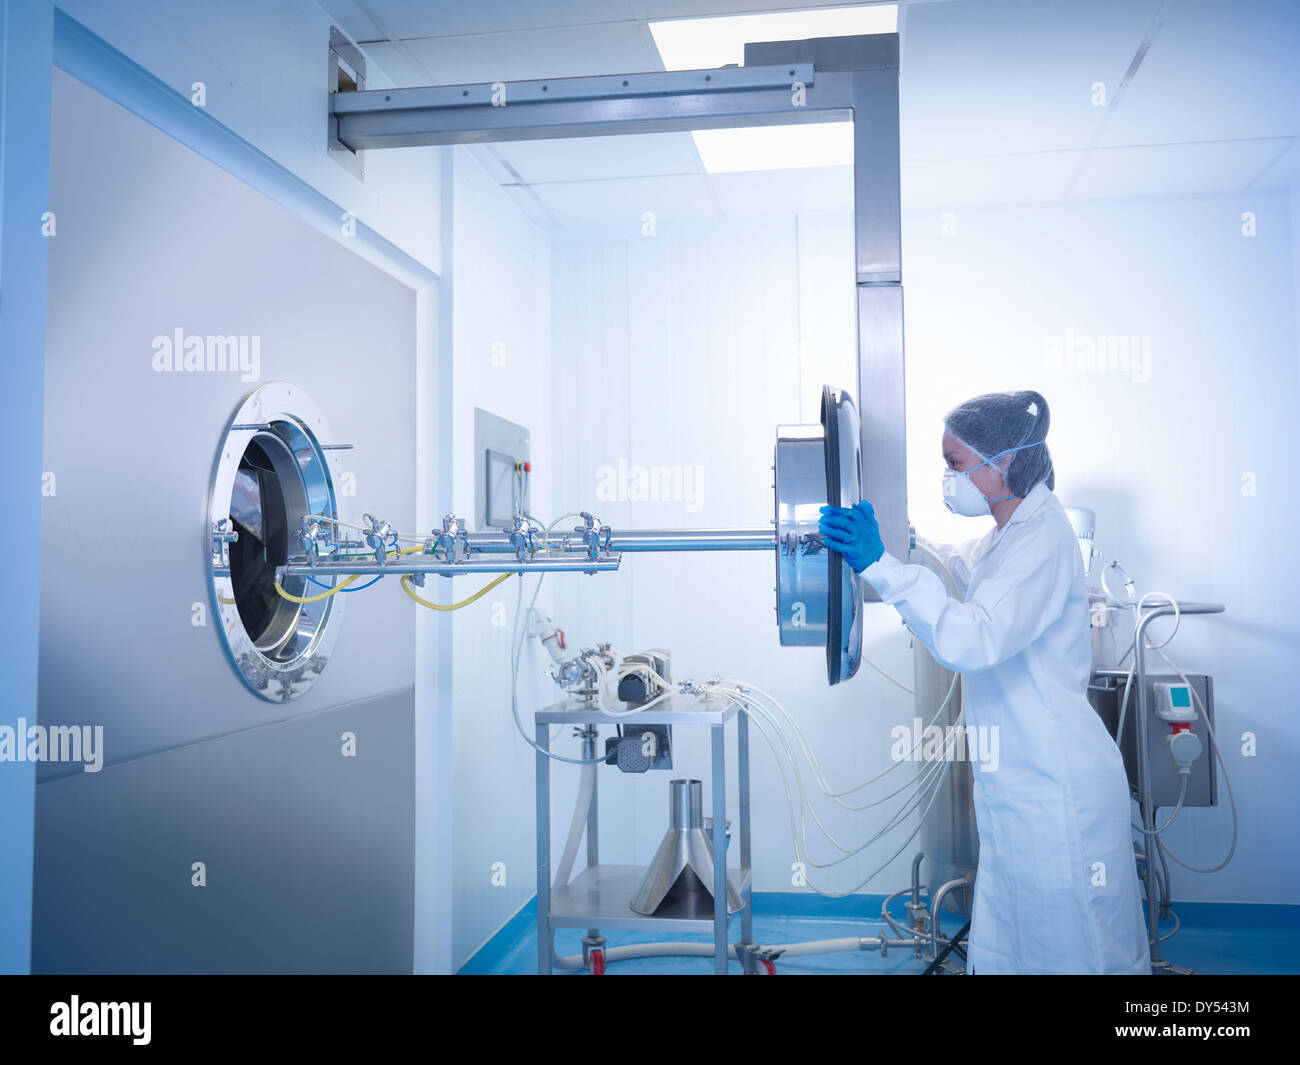 Worker inserting spray jets into tablet coating machine in pharmaceutical factory - Stock Image